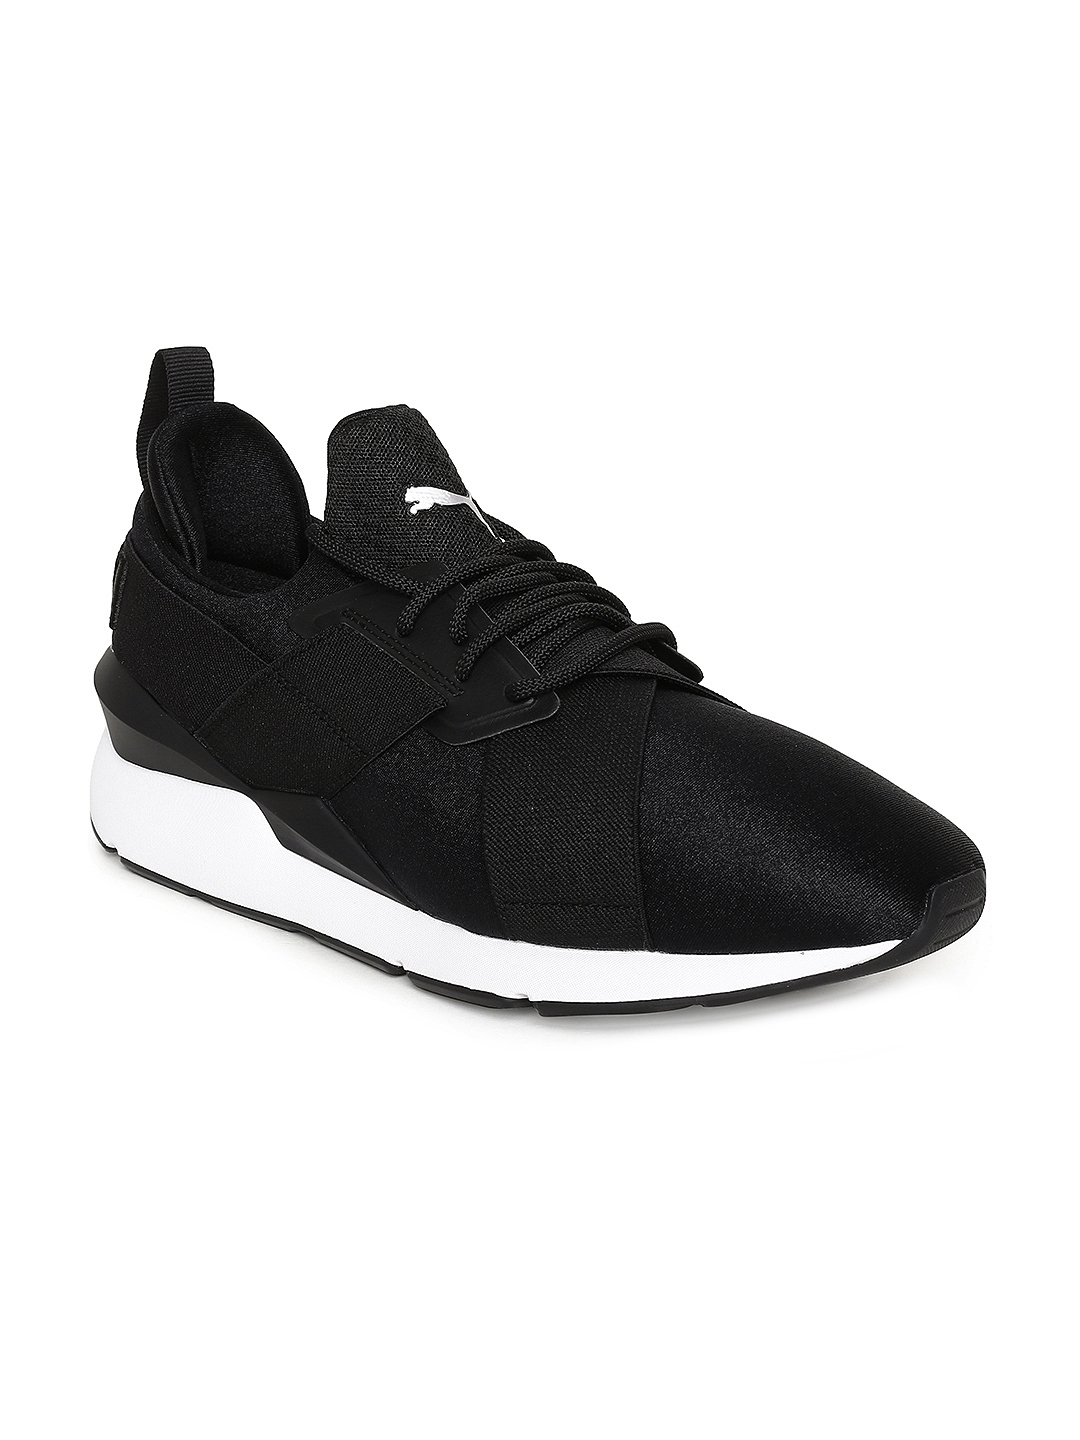 302e970cec12d2 Buy Puma Women Black Muse Satin EP Sneakers - Casual Shoes for Women ...